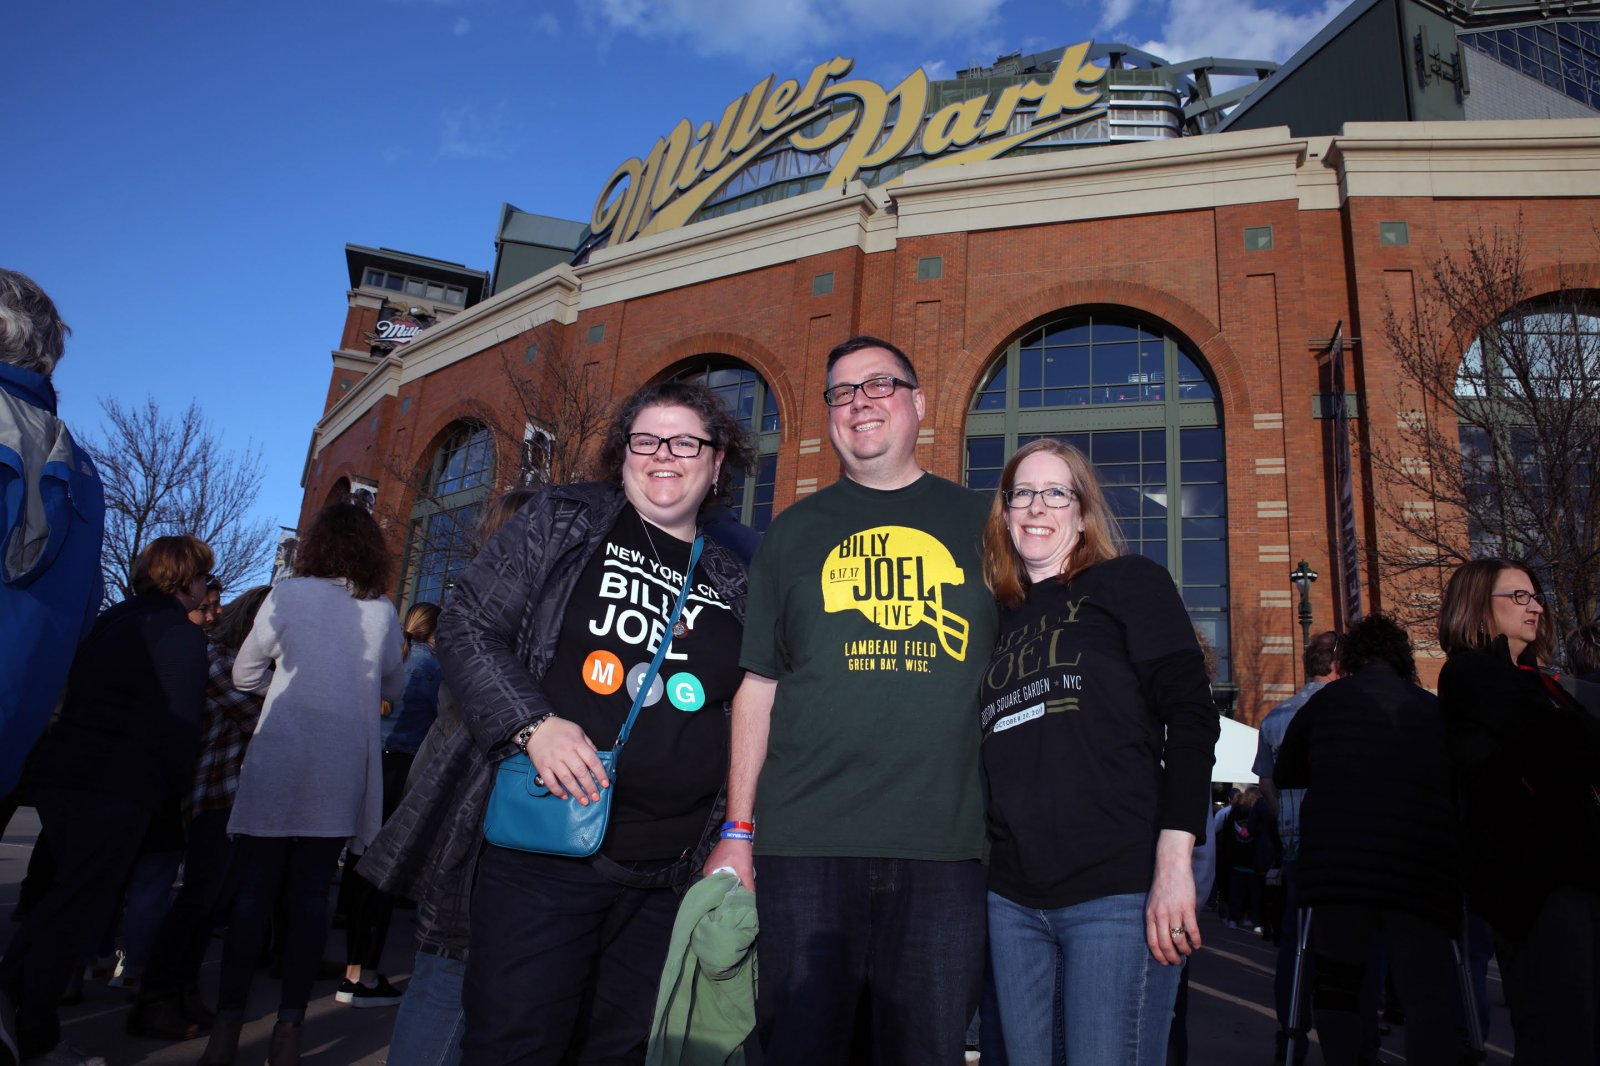 Elizabeth Elsy from Michigan, Brian and Jennifer Maron, from Madison, WI.